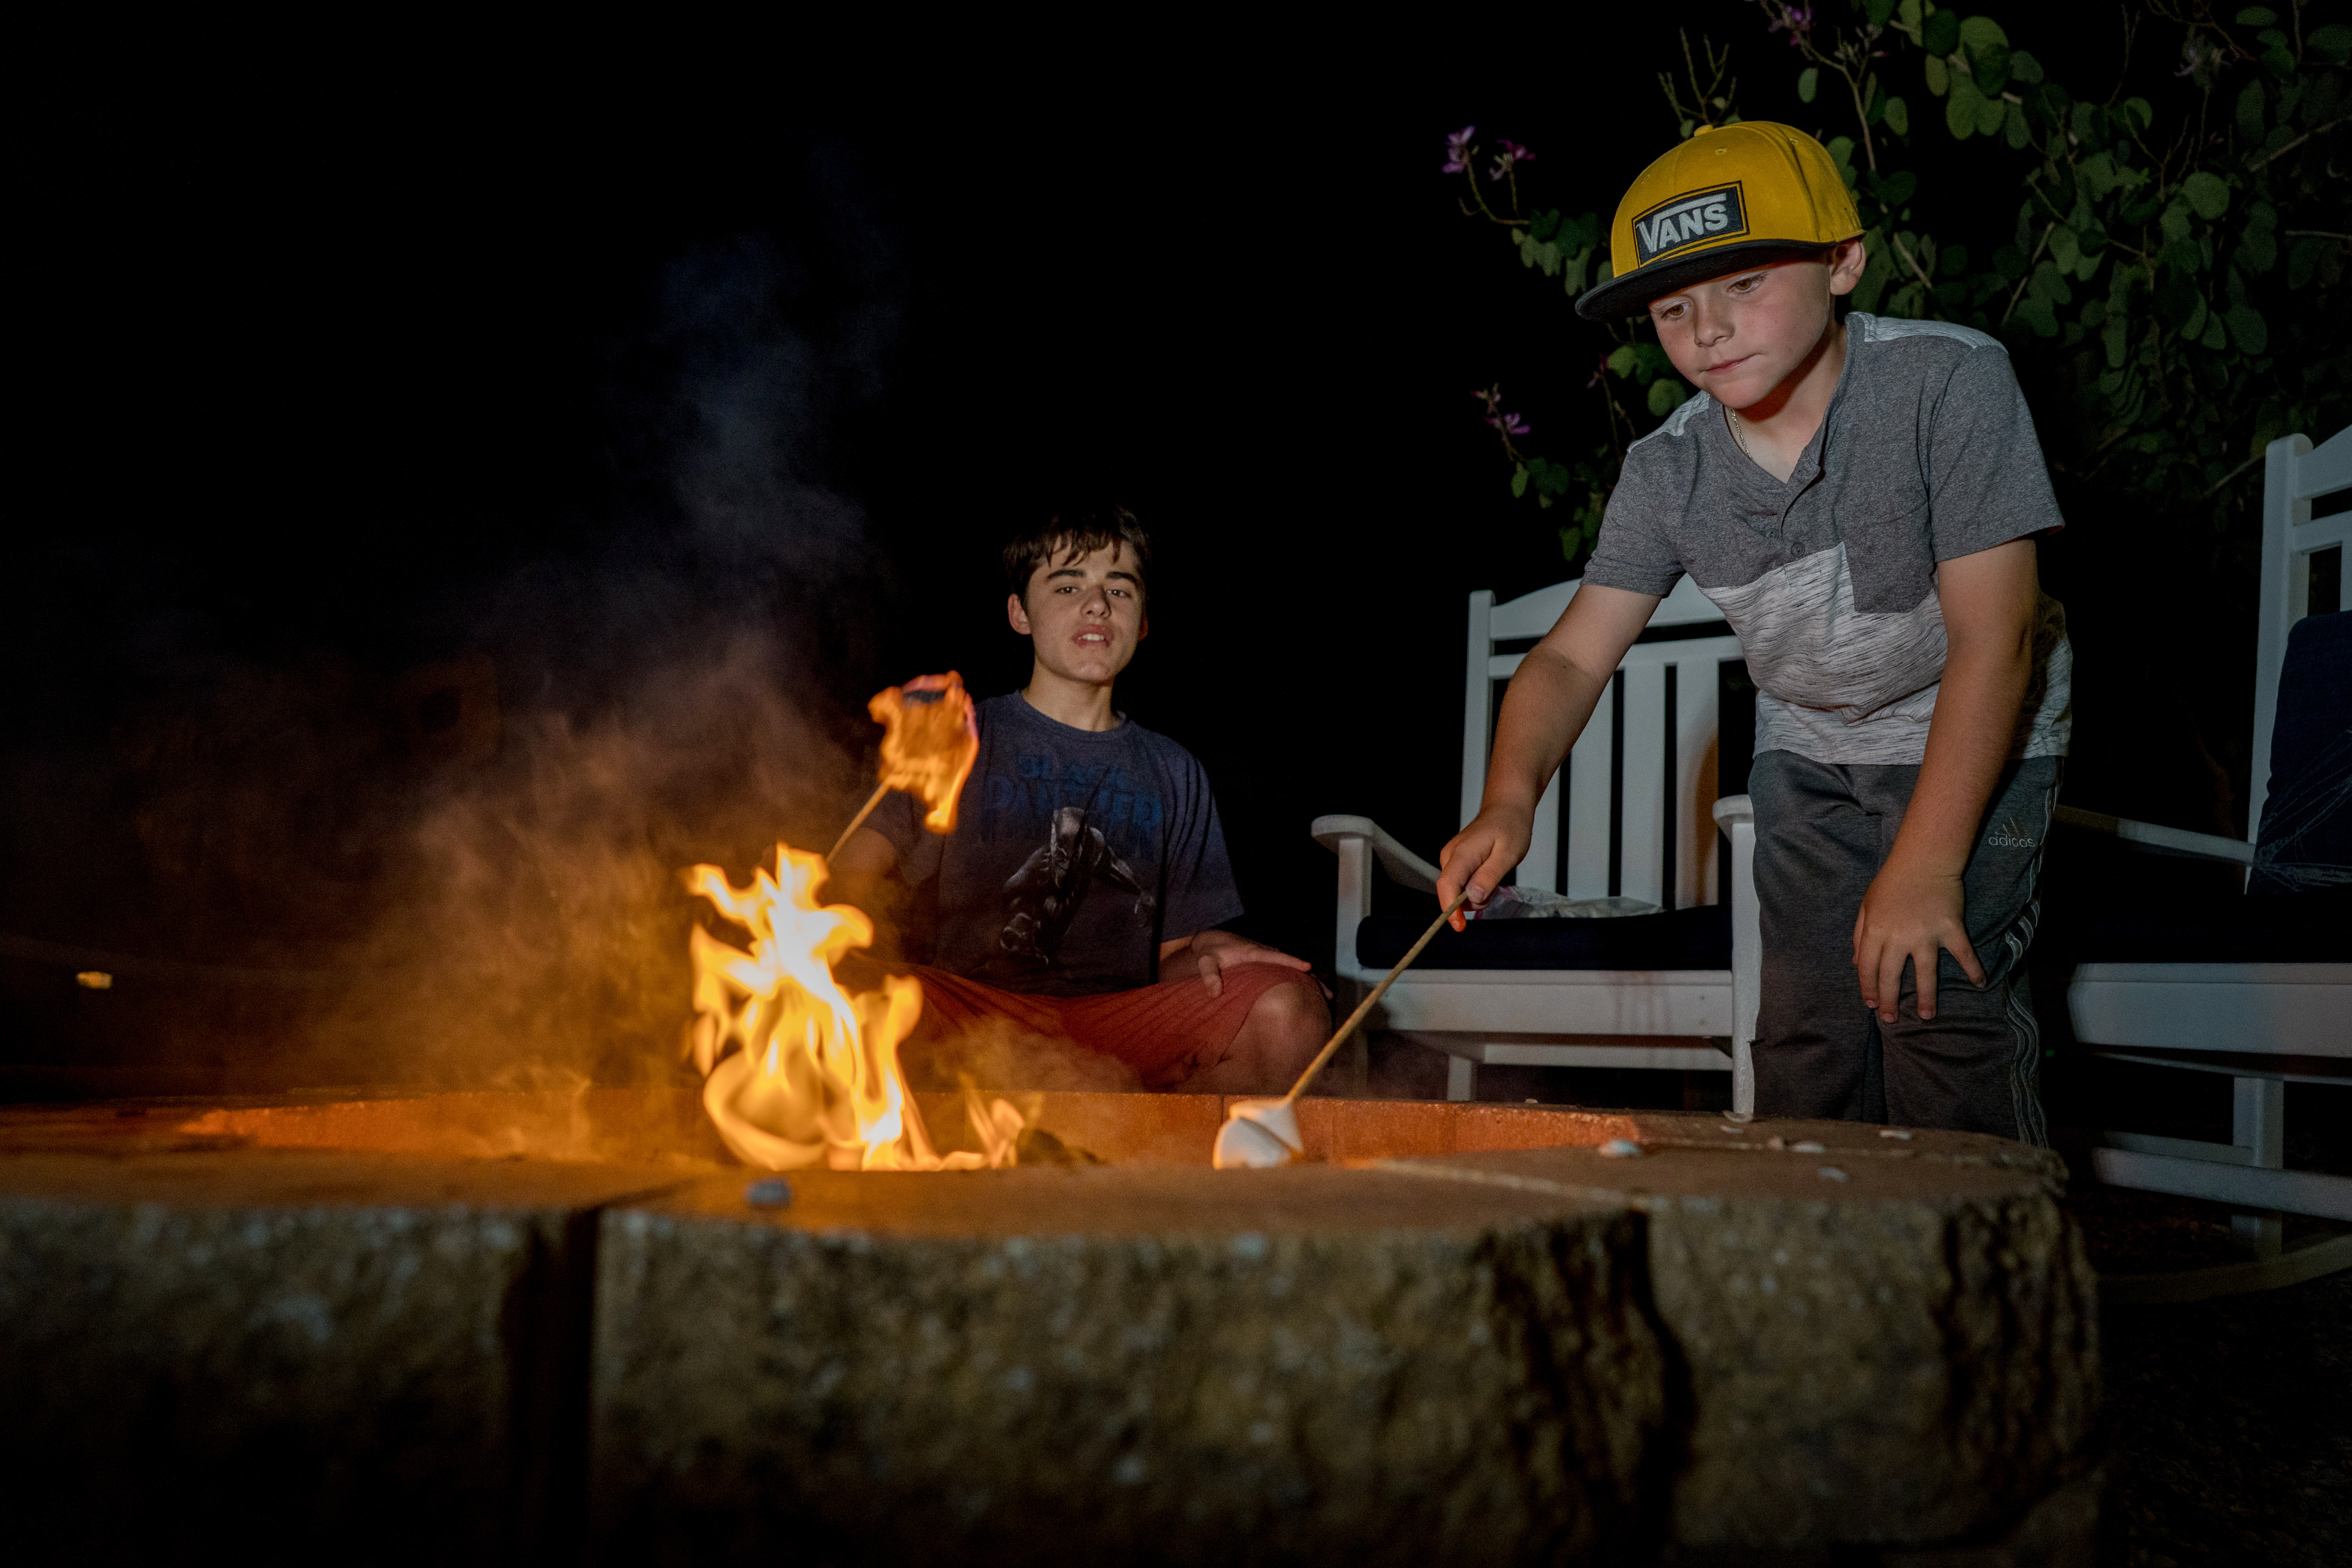 Our fire pit is great for marshmallow roasting and story swapping.